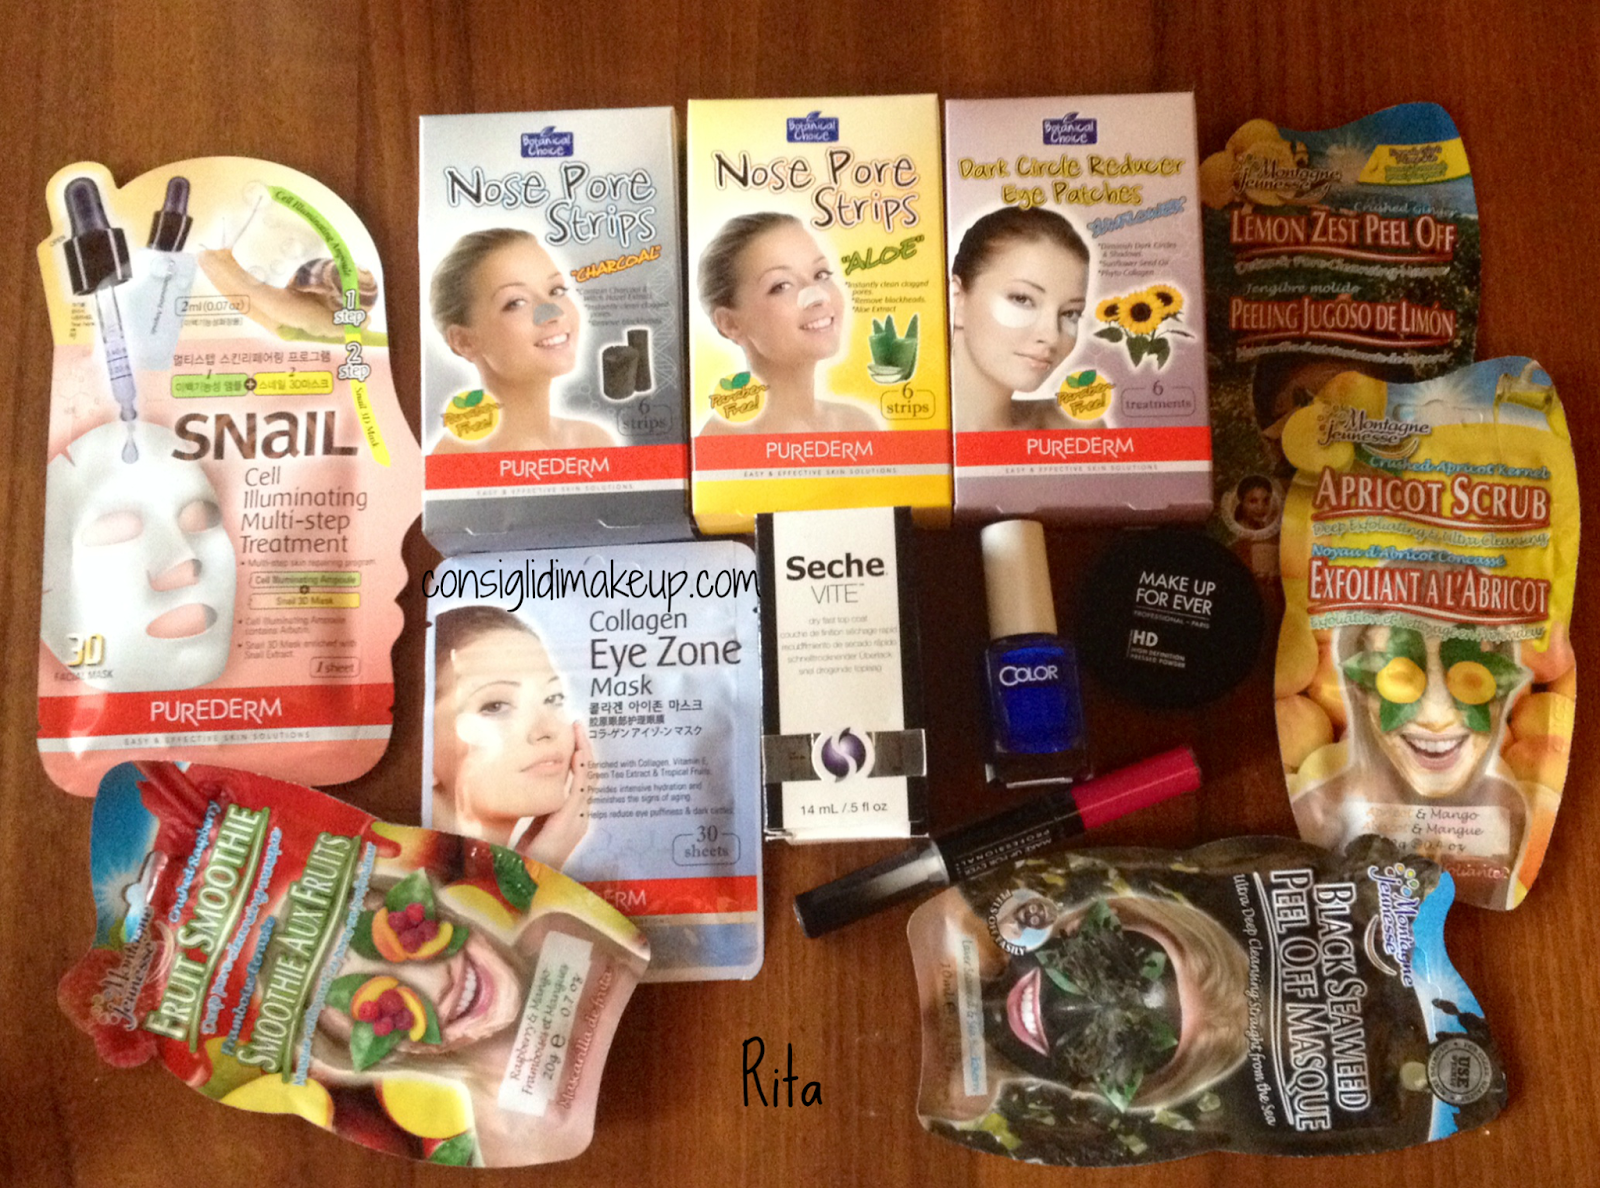 Consigli di Makeup: CosmoHaul - Cerottini Asiatici, Maschere, Color Cl...